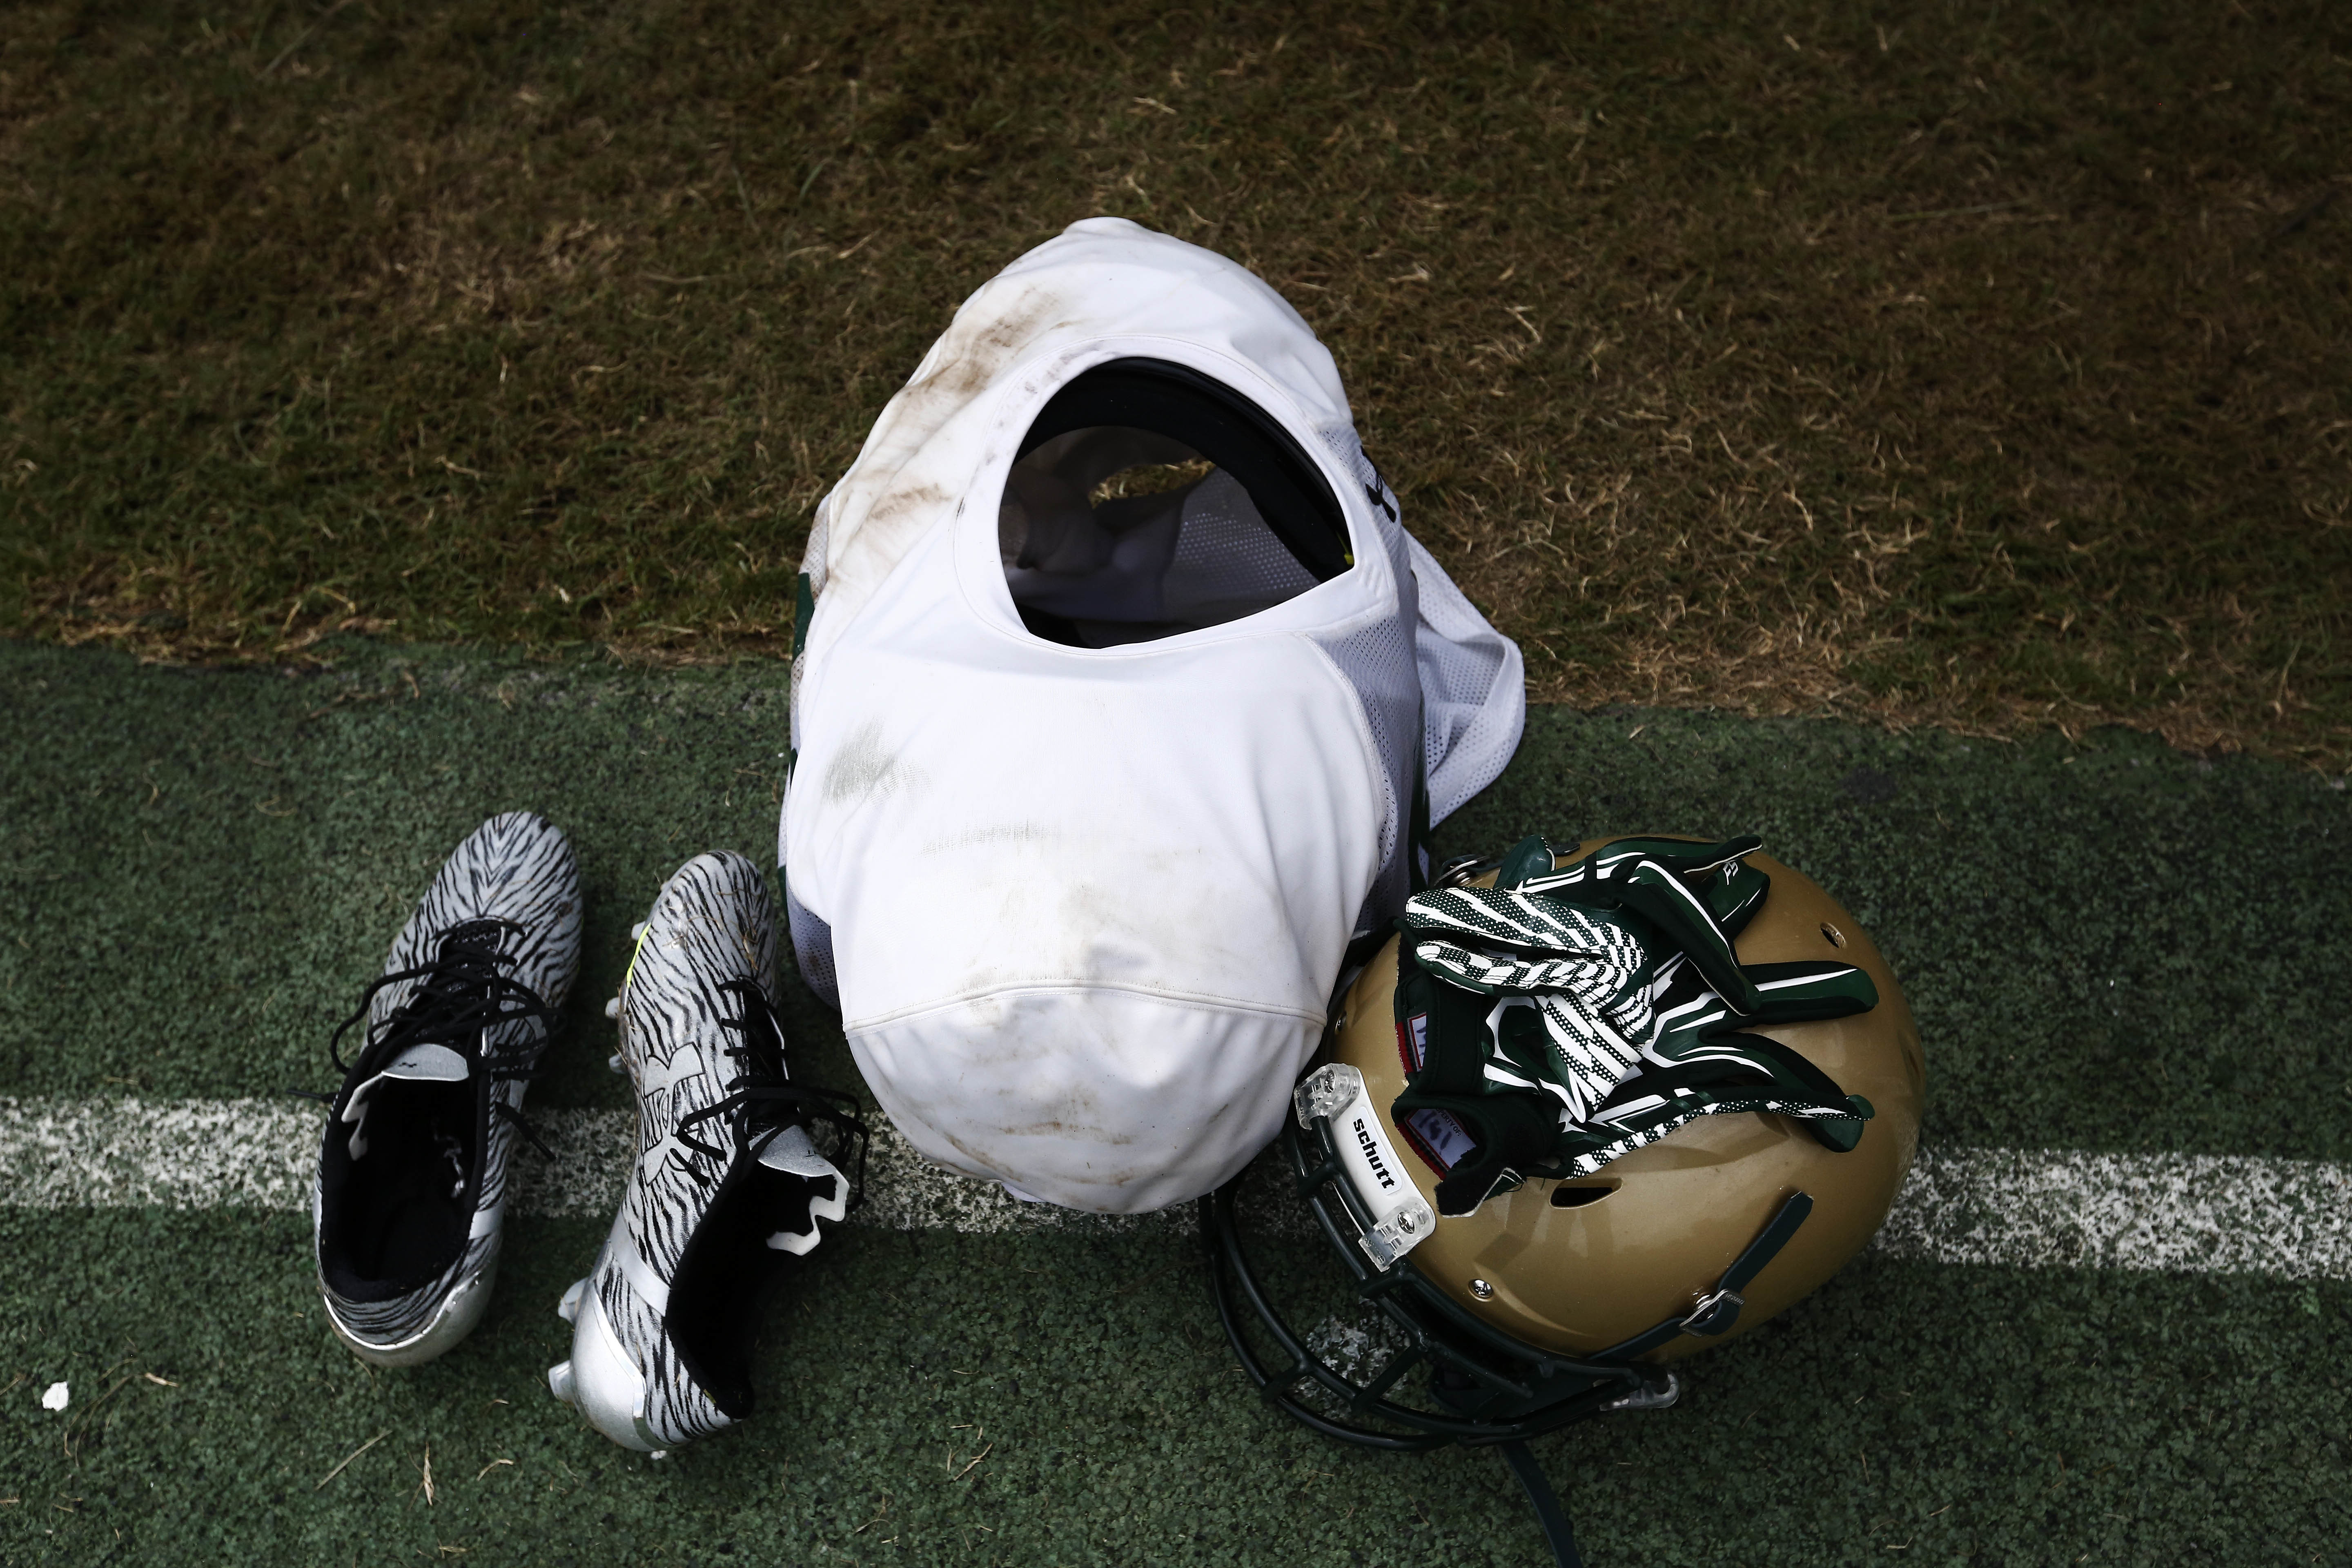 A UAB football player's gear sits on the practice field, Thursday, Aug. 25, 2016, in Birmingham, Ala. A program shut down for lack of financial support in December 2014 is coming back bigger and better, only the wins are coming on the balance sheet instea